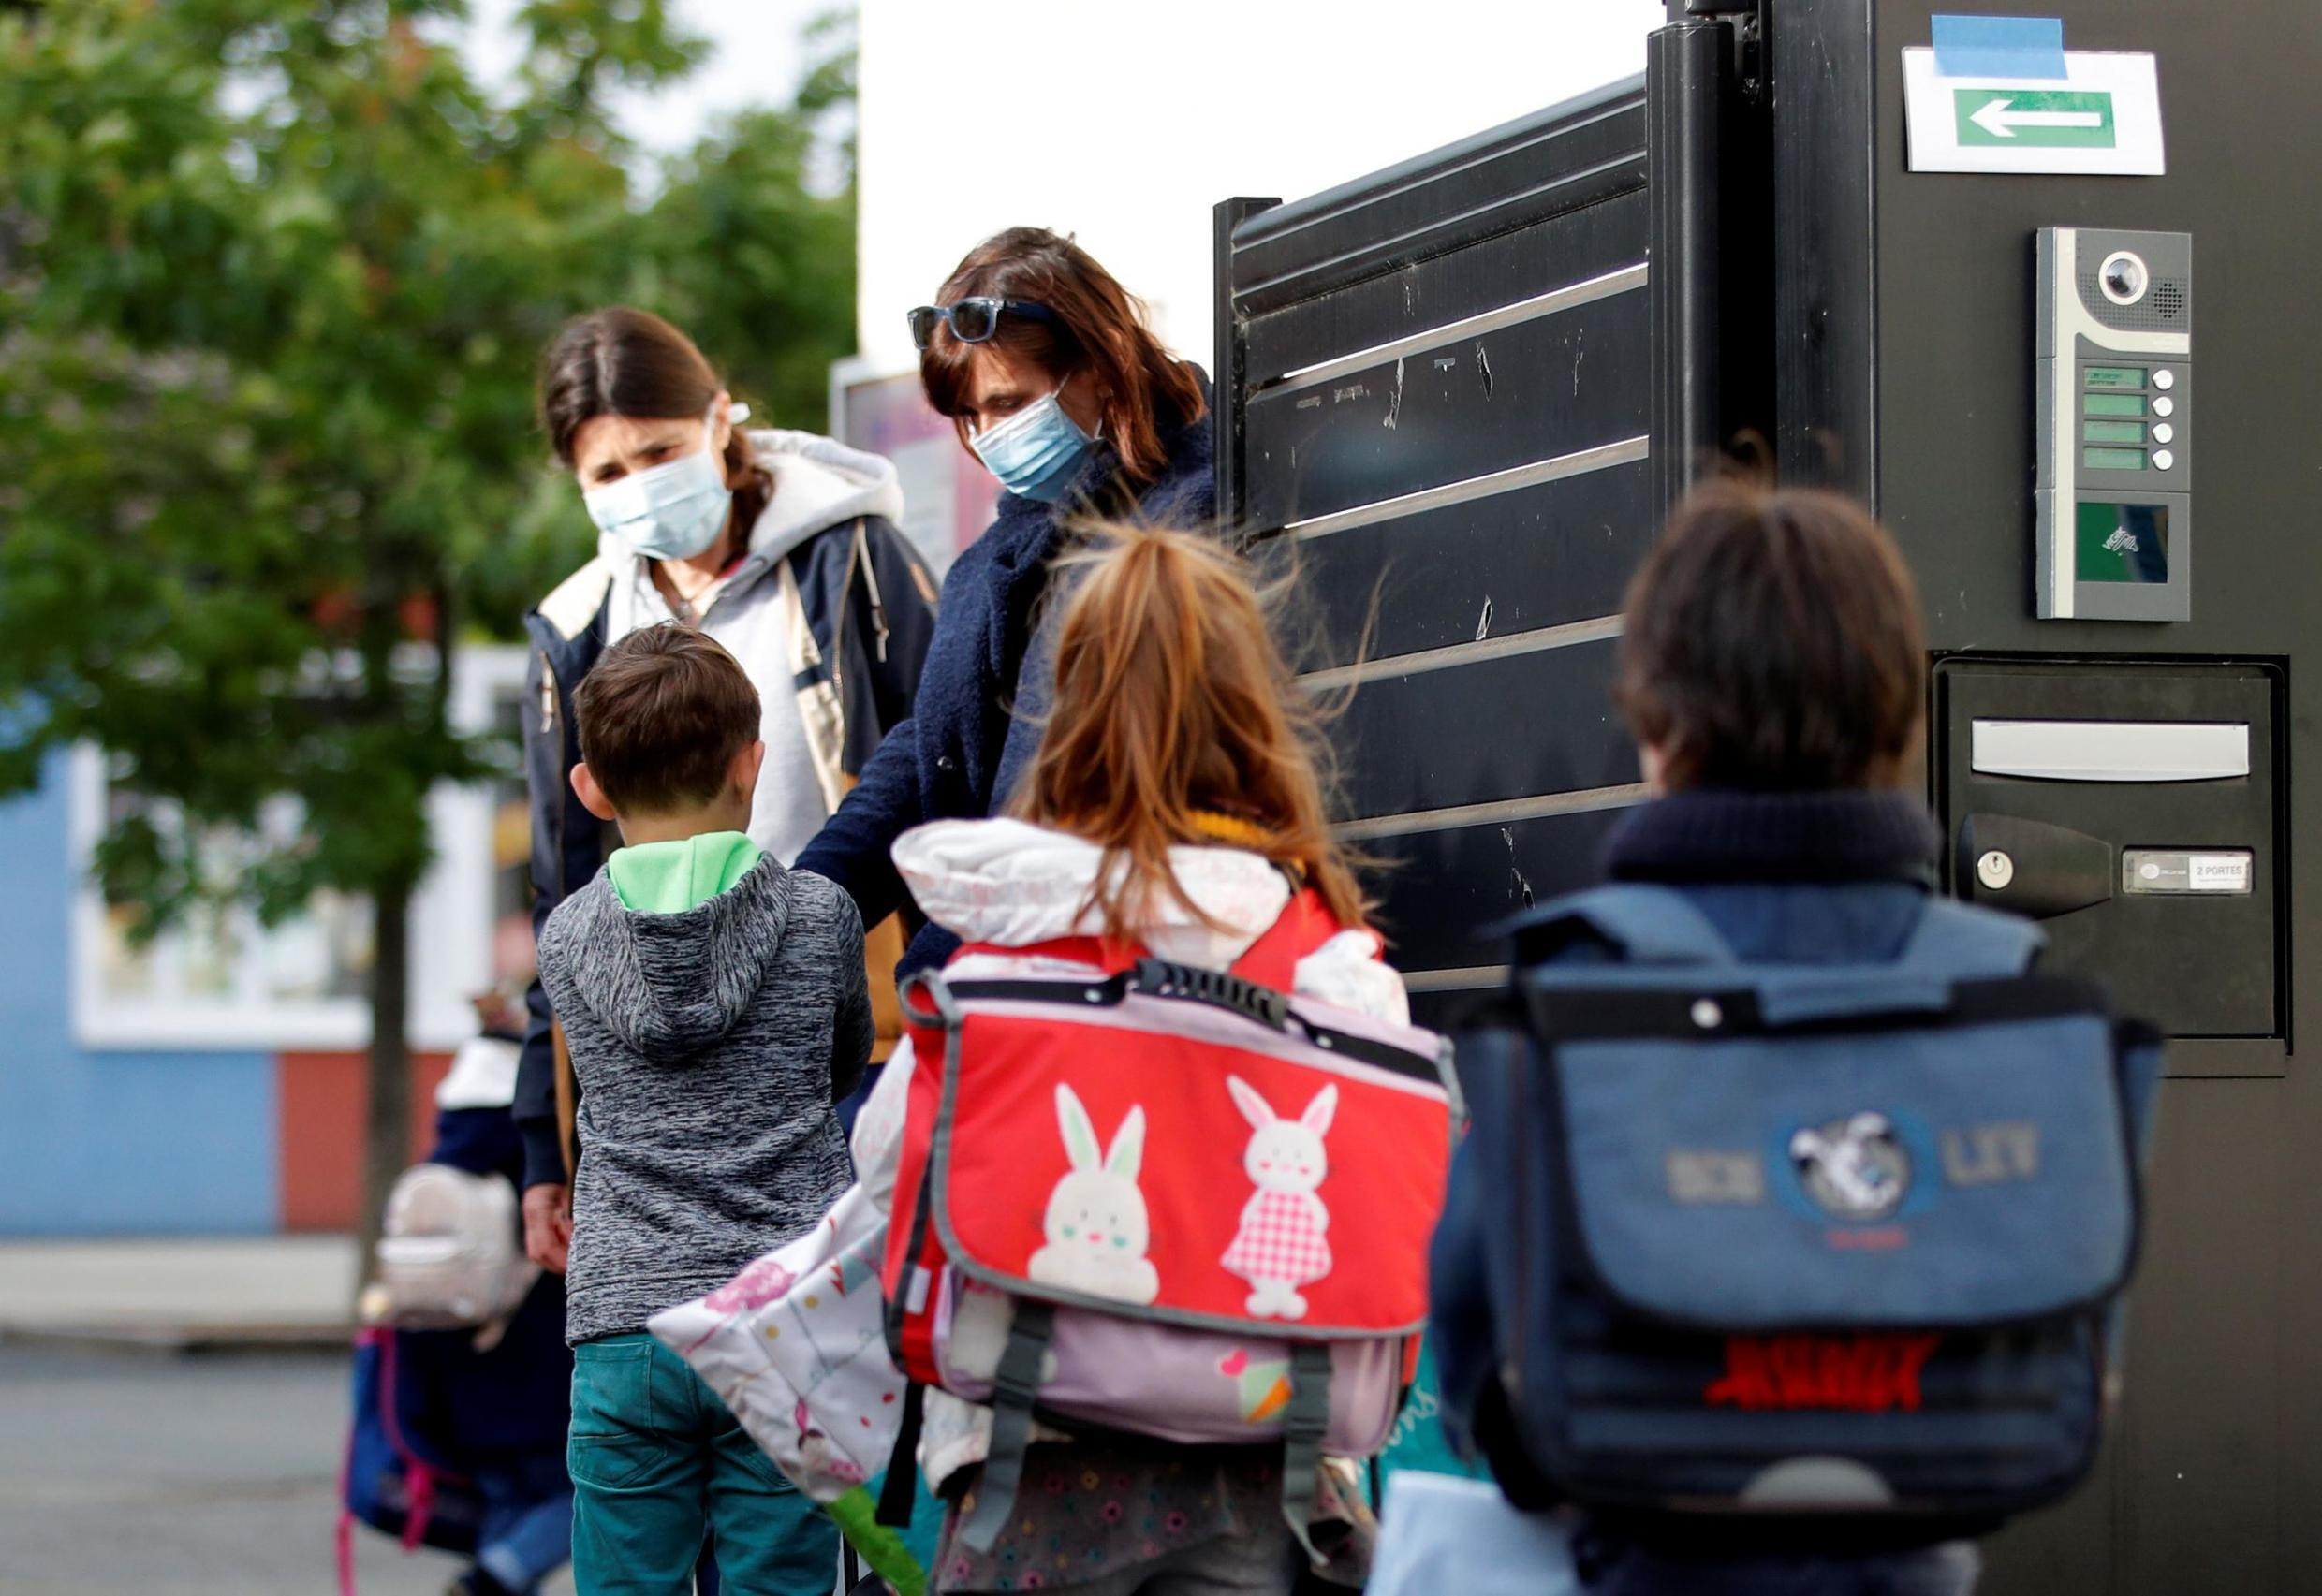 French pupils have been returning to school in limited numbers since 11 May. President Emmanuel Macron's pledge to have all schools up to the high-school level reopen on 22 June would make France one of few countries to completely reopen before September, but restrictions have been heavy so far.